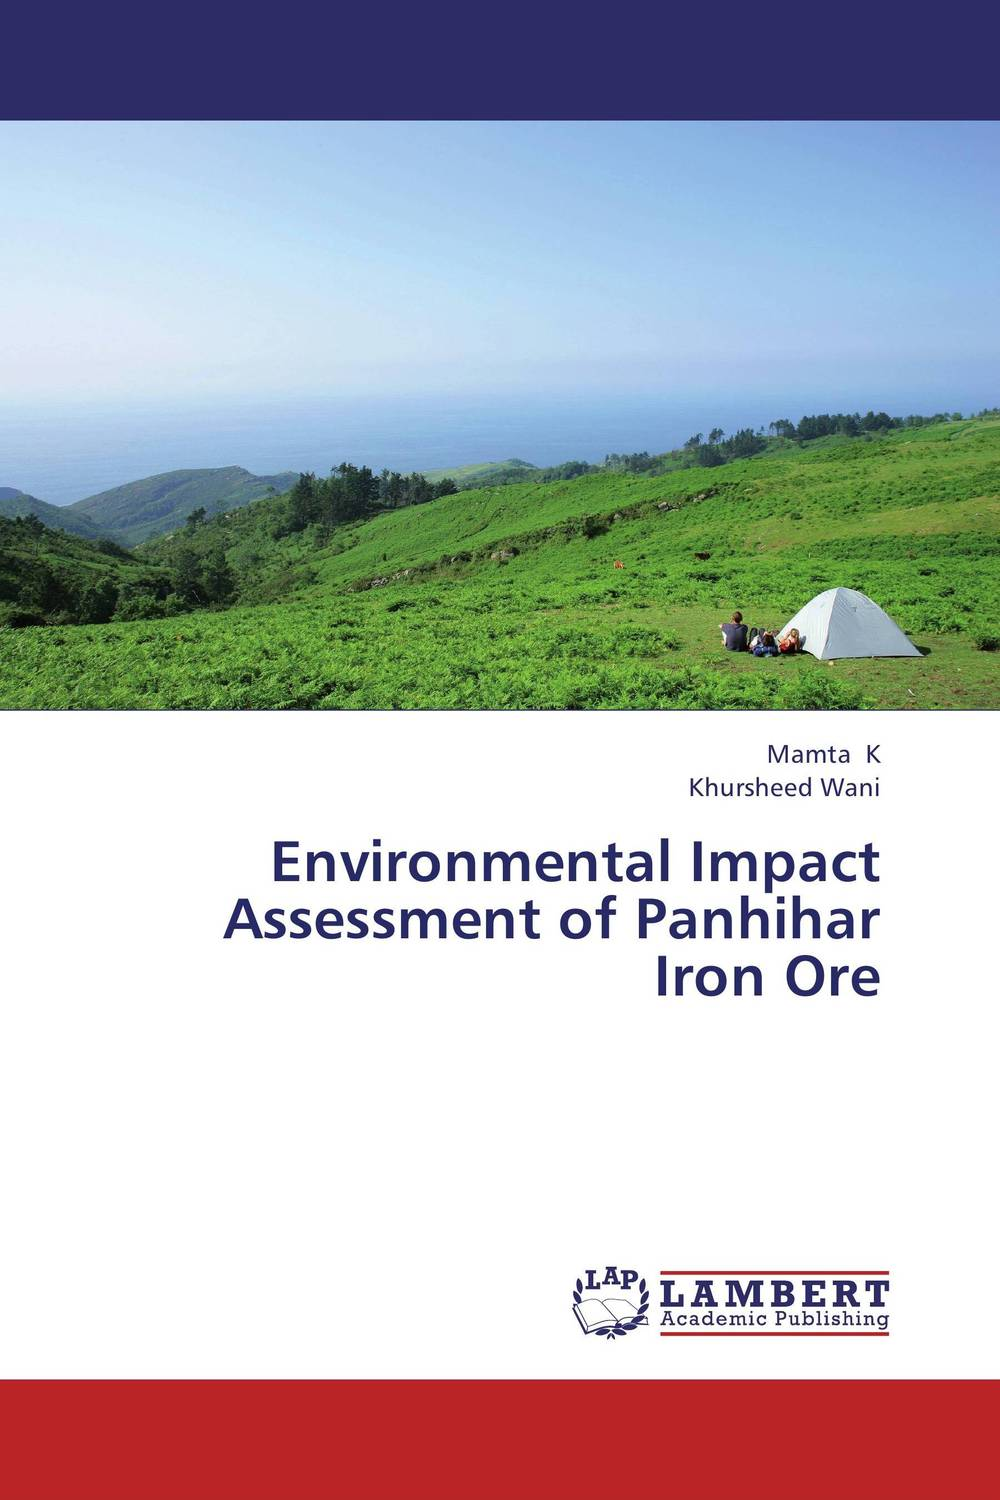 купить Environmental Impact Assessment of Panhihar Iron Ore недорого